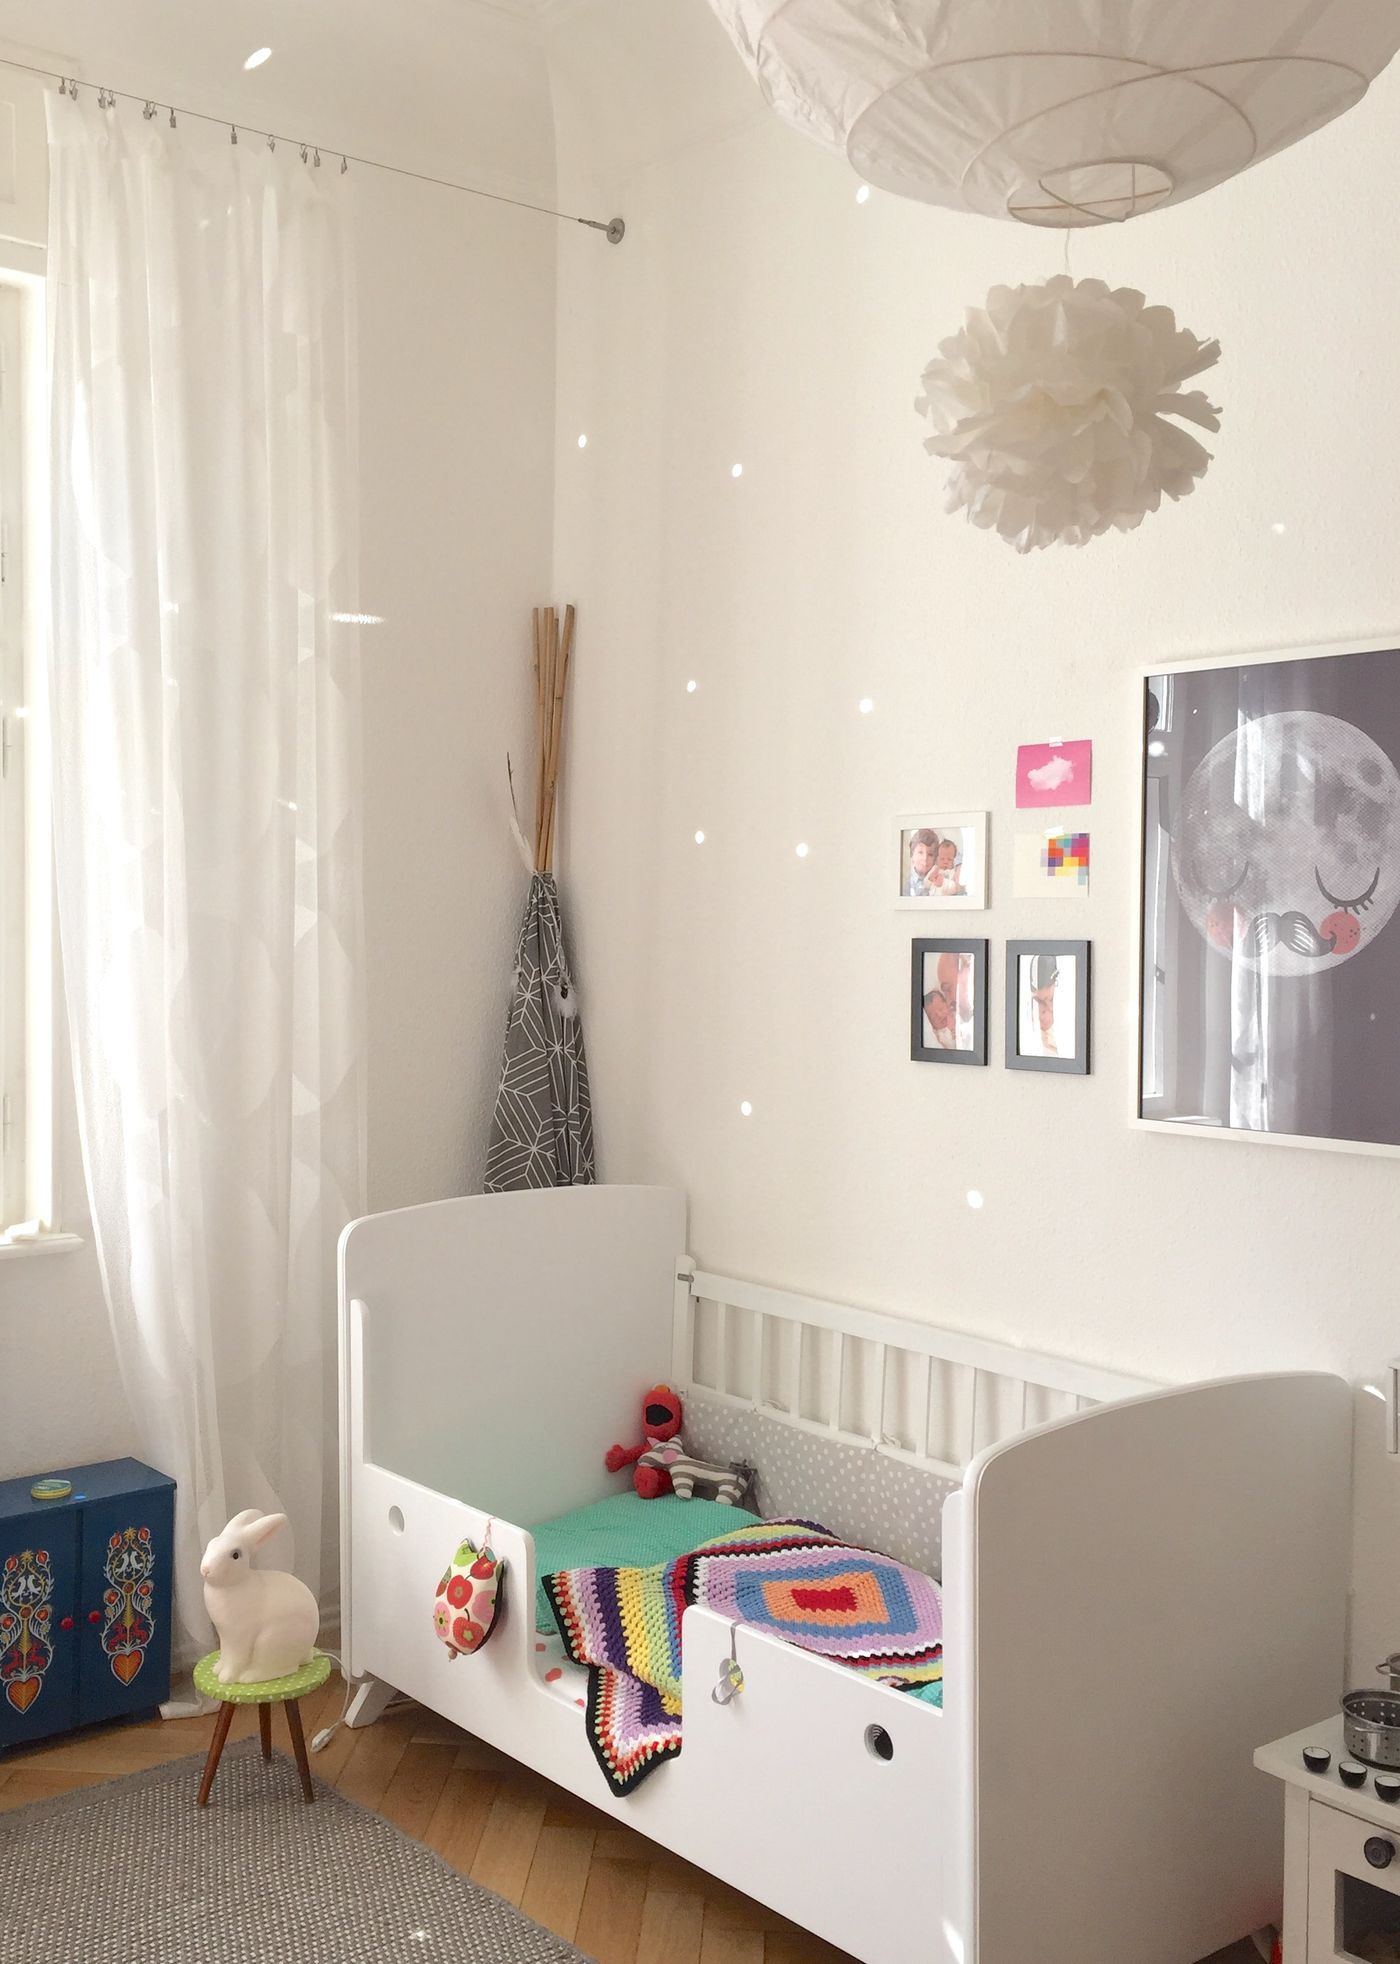 die sch nsten ideen f r dein kinderzimmer seite 25. Black Bedroom Furniture Sets. Home Design Ideas